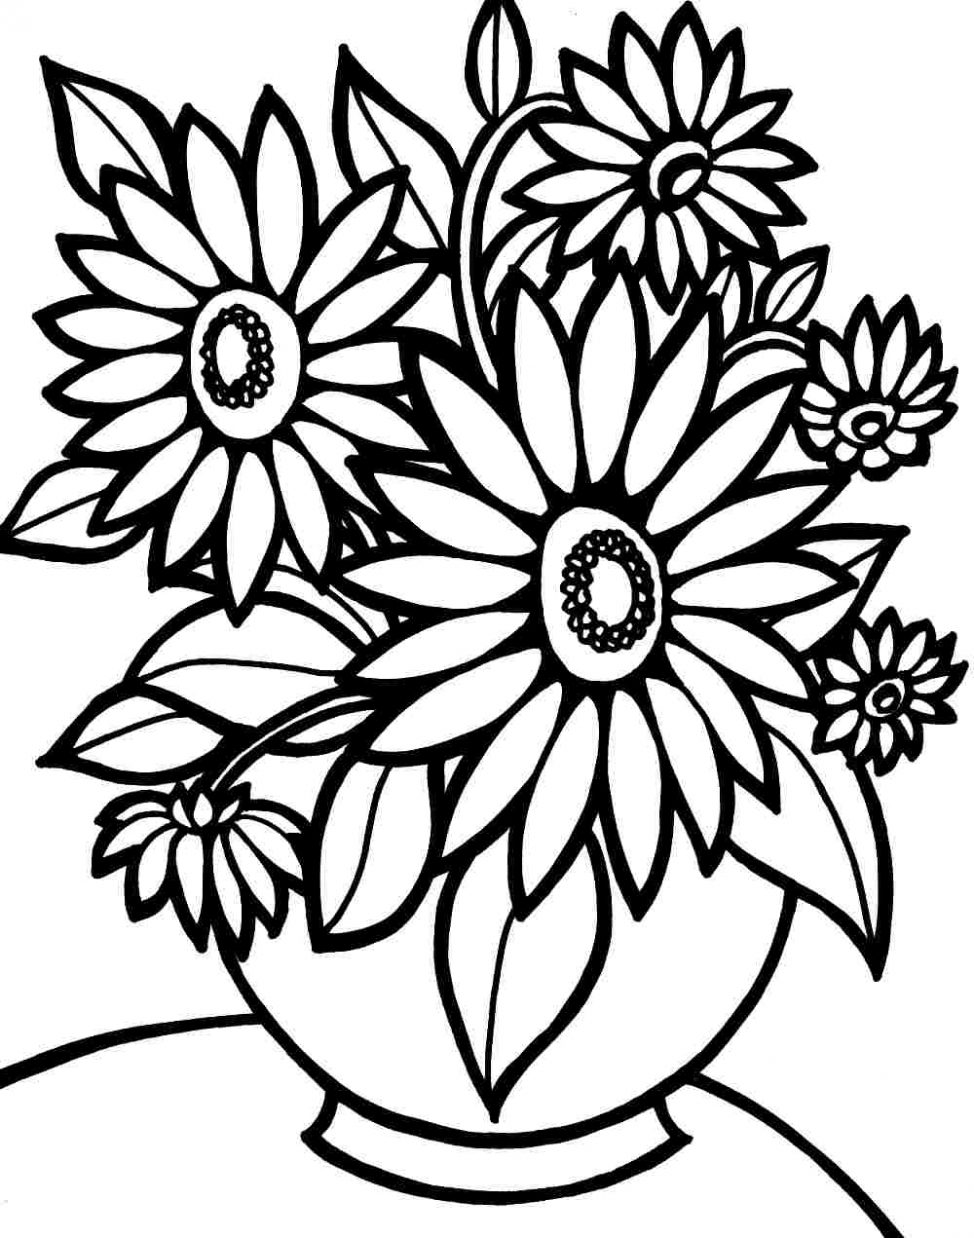 974x1238 Coloring Pages Delightful Coloring Pages Flower Free Printable